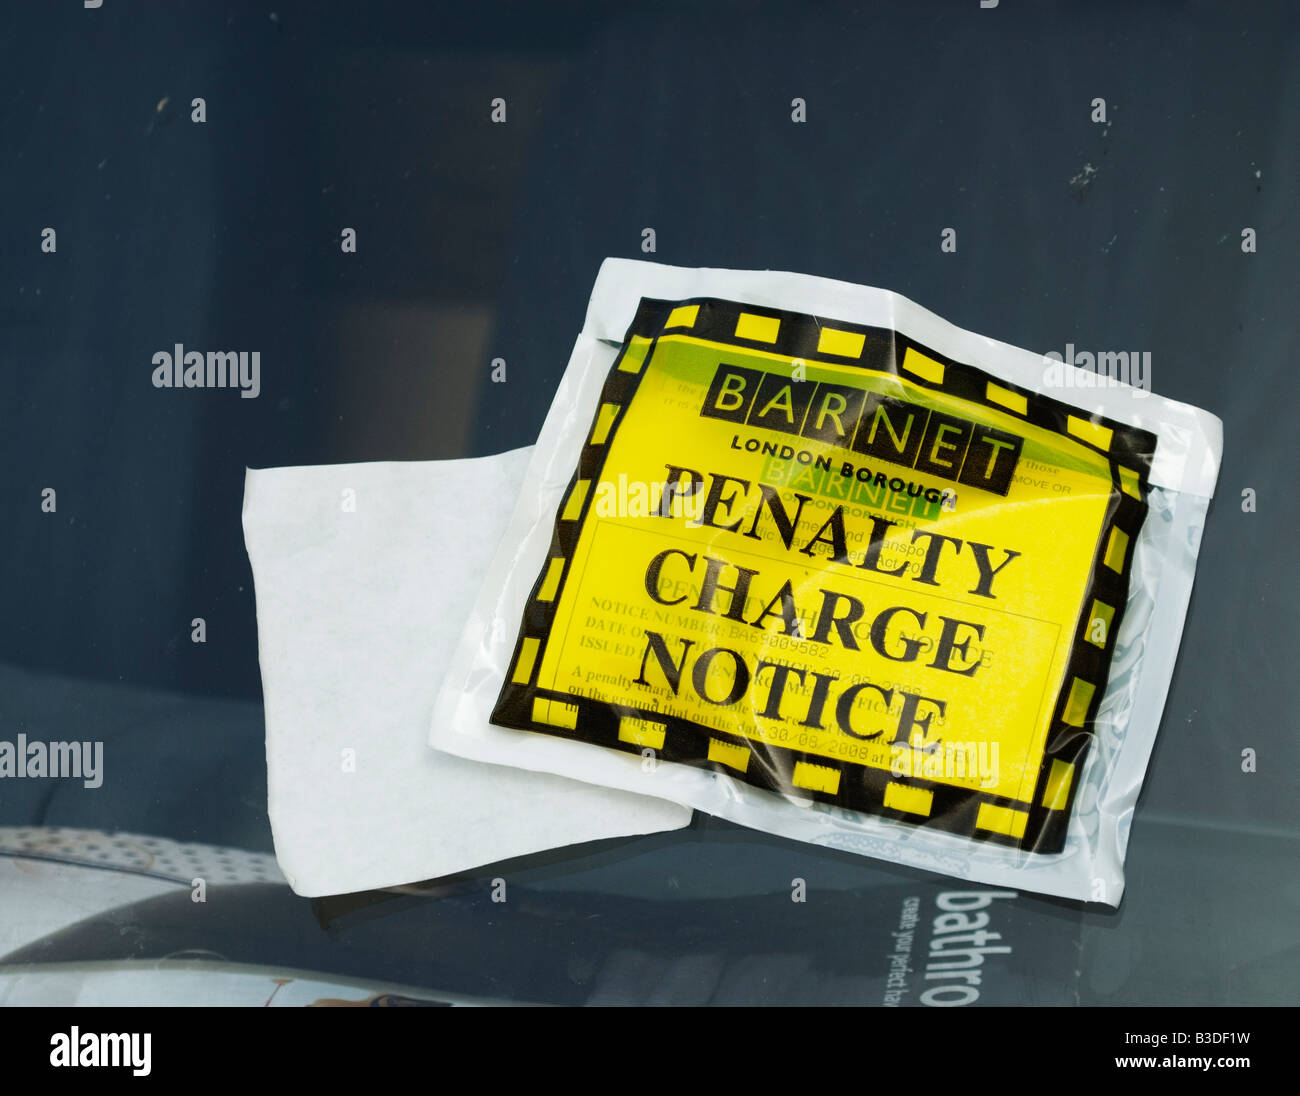 Penalty Charge Notice issued in the London Borough of Barnet - Stock Image